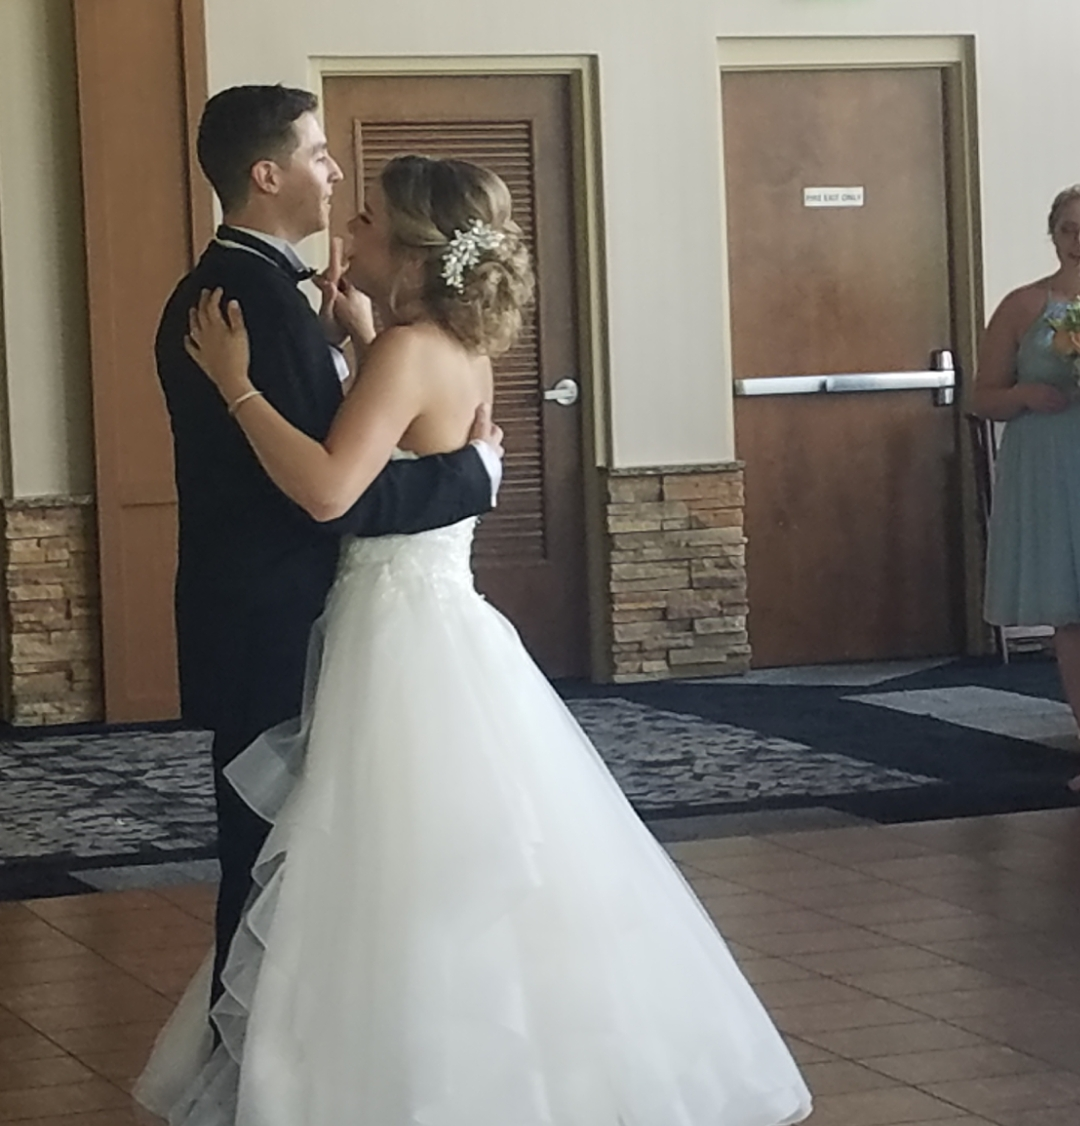 First dance at Blue Mountain resort in Palmerton,Pa Lehigh valley fun wedding dj's